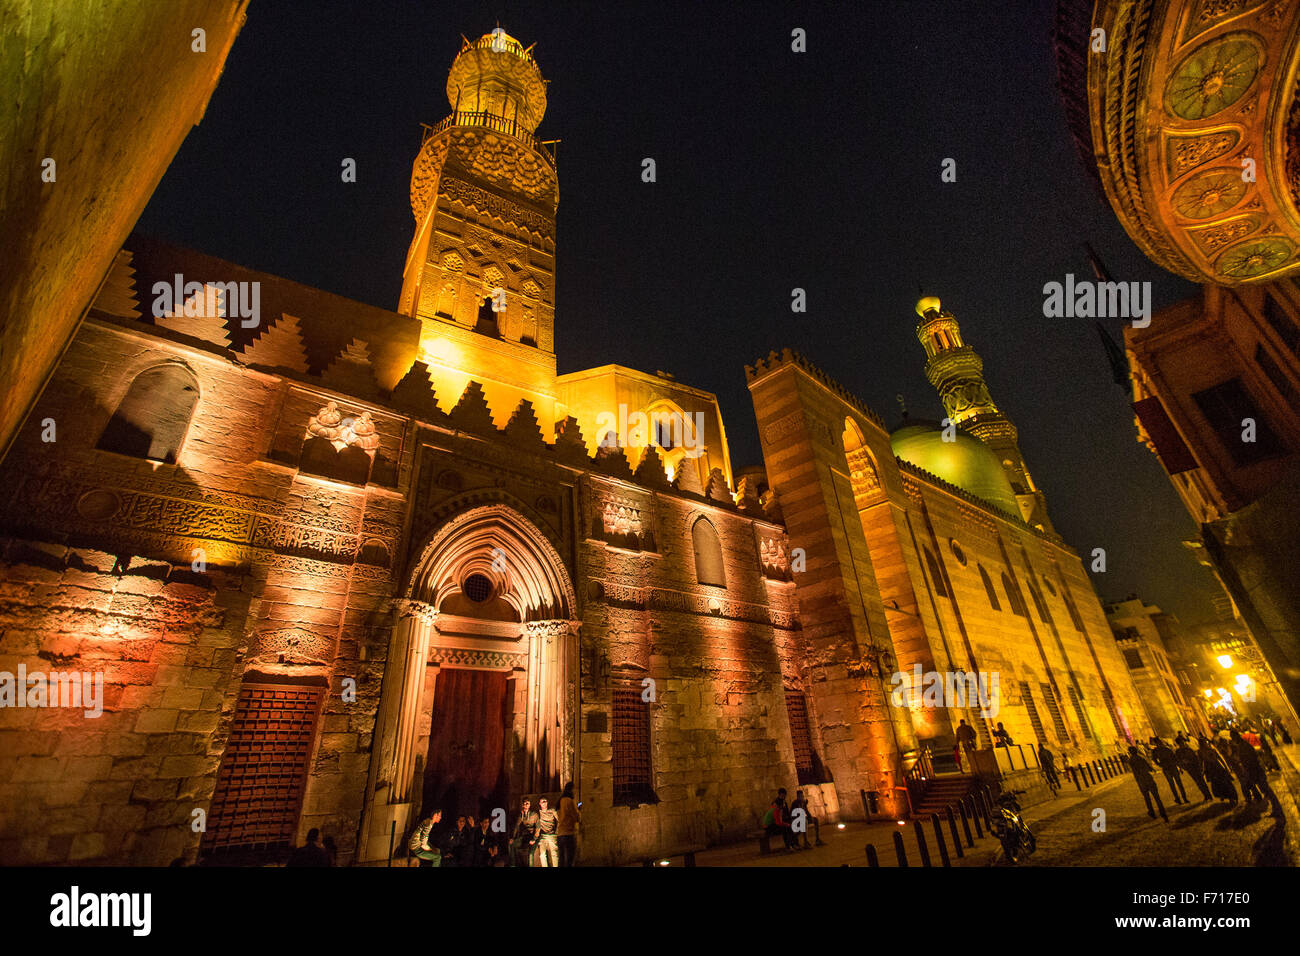 Egypt, Ancient City, Cairo, El Moaz Street. - Stock Image